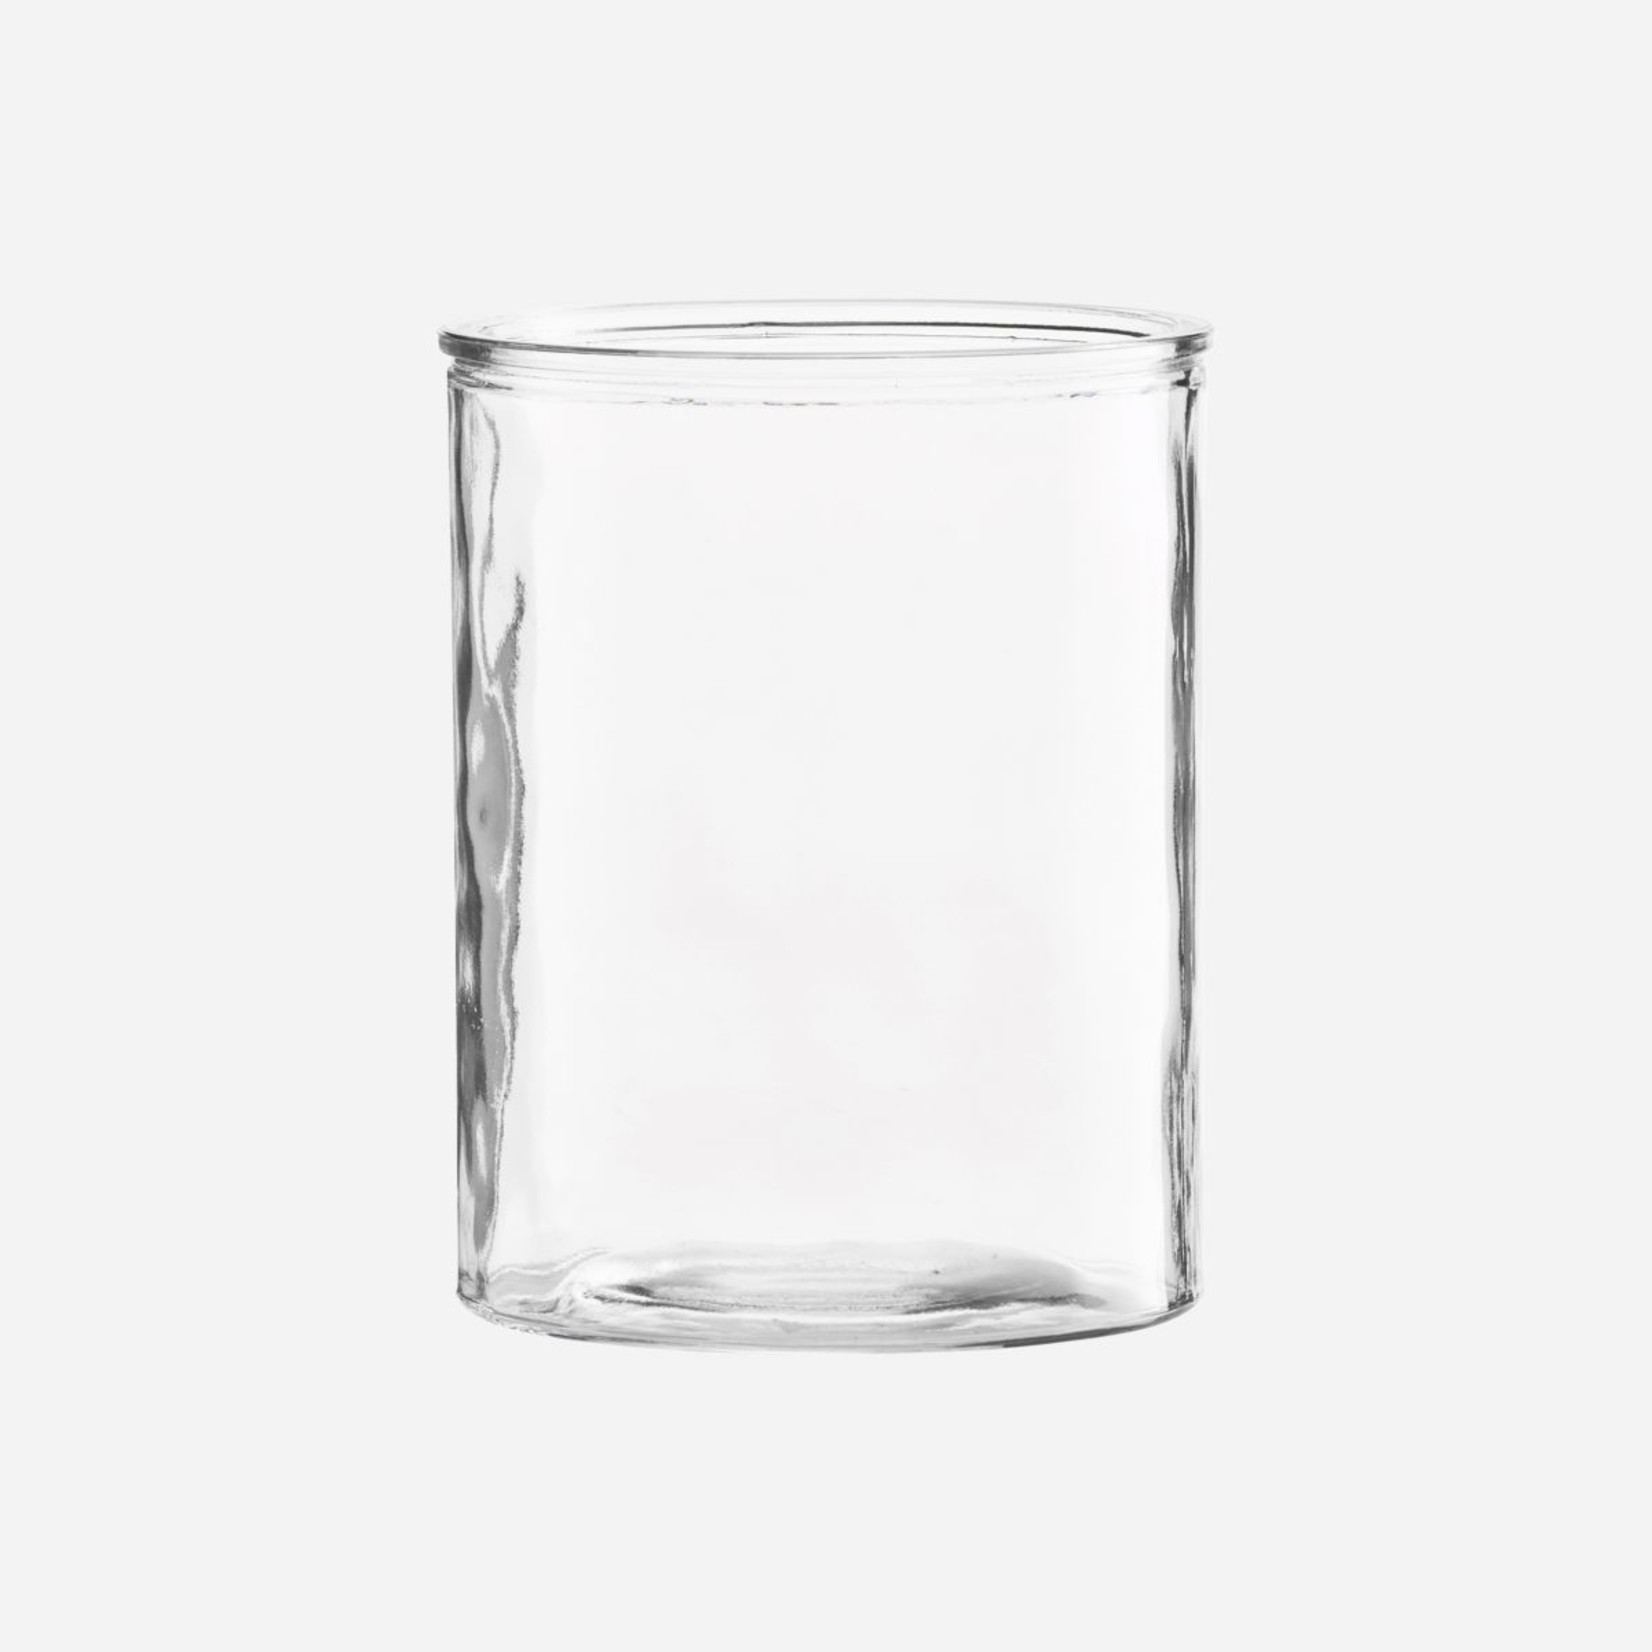 House Doctor House Doctor, Cylinder vaas, clear